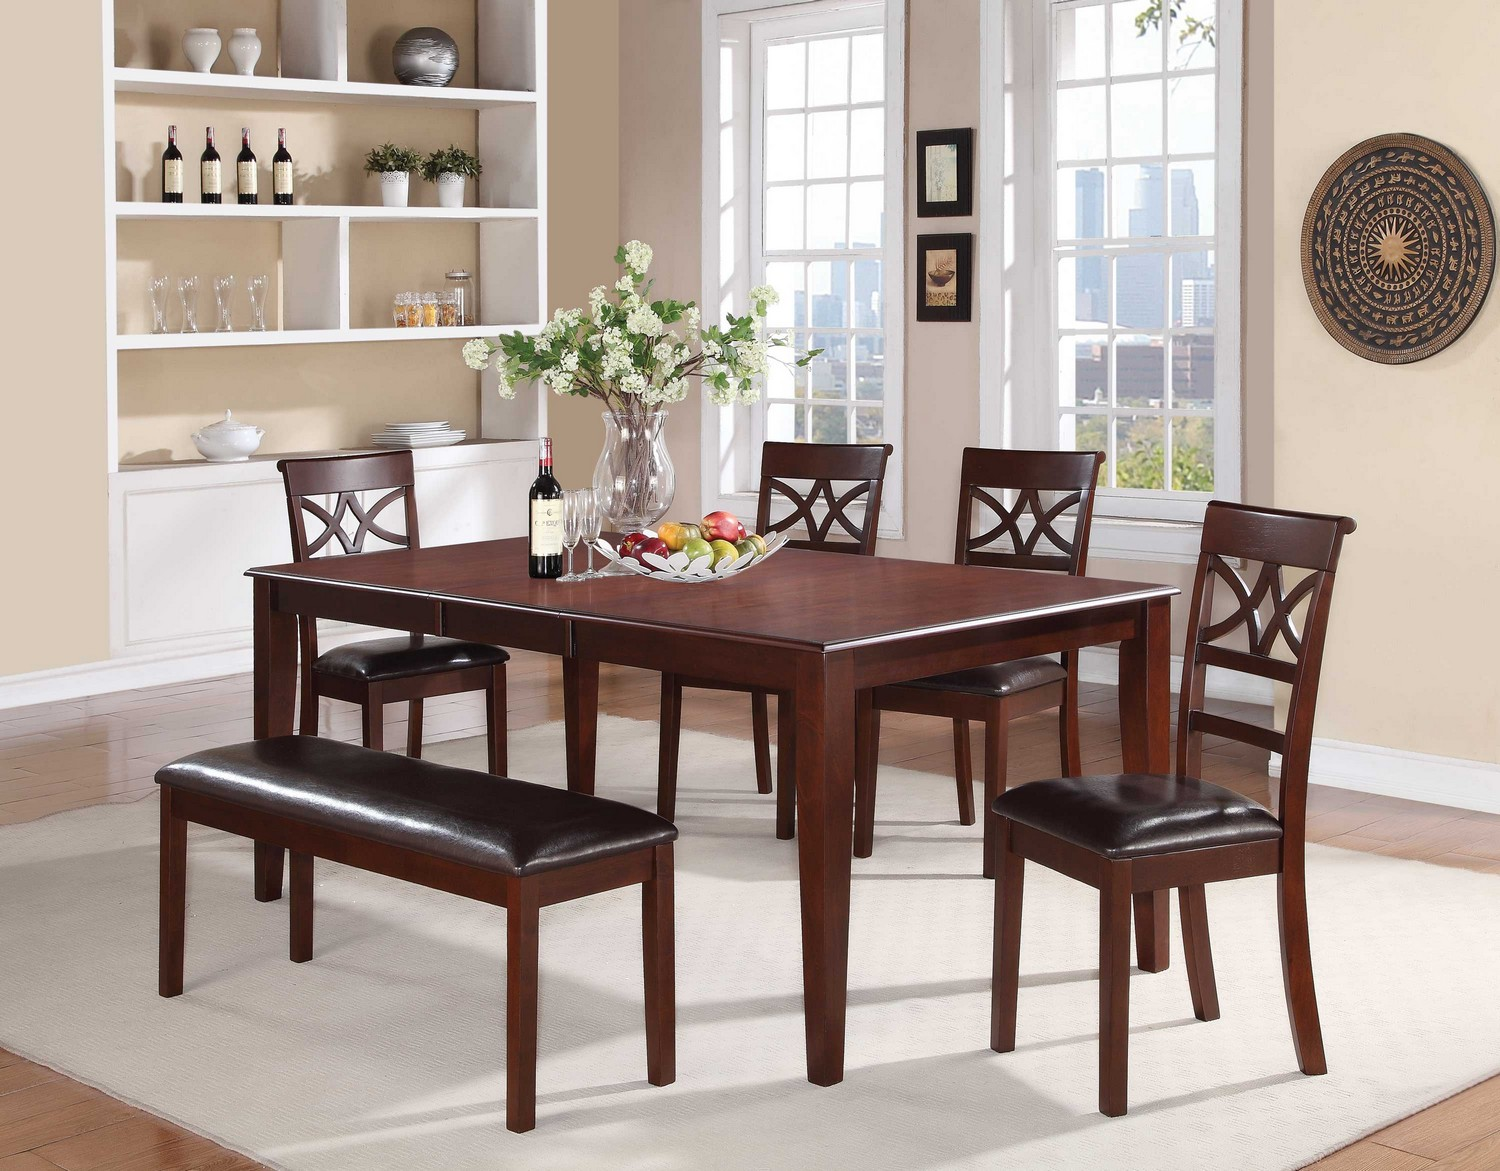 Coaster Dunham Dining Set - Brown Red